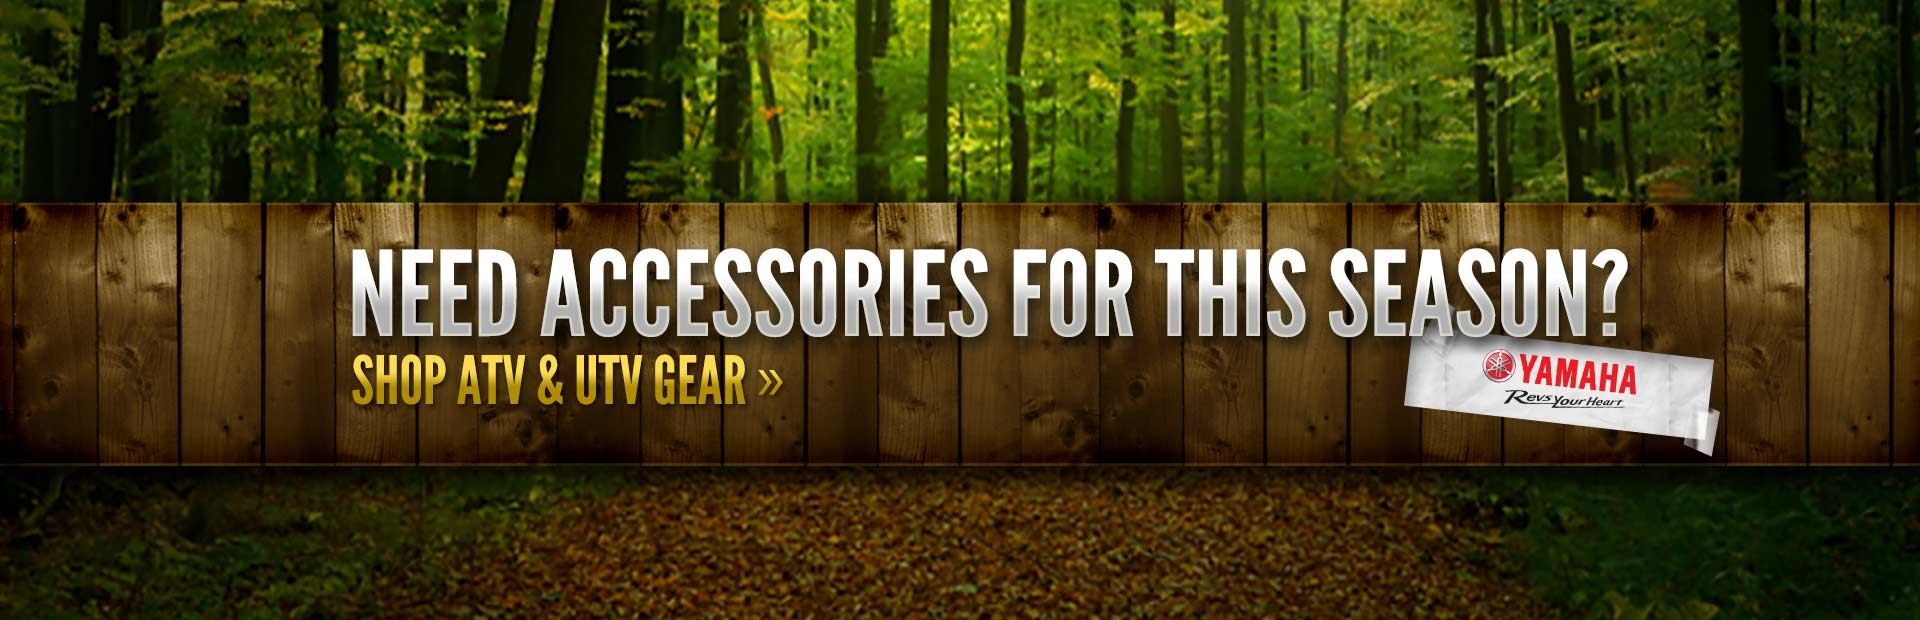 Need accessories for this season? Click here to shop ATV and UTV gear!